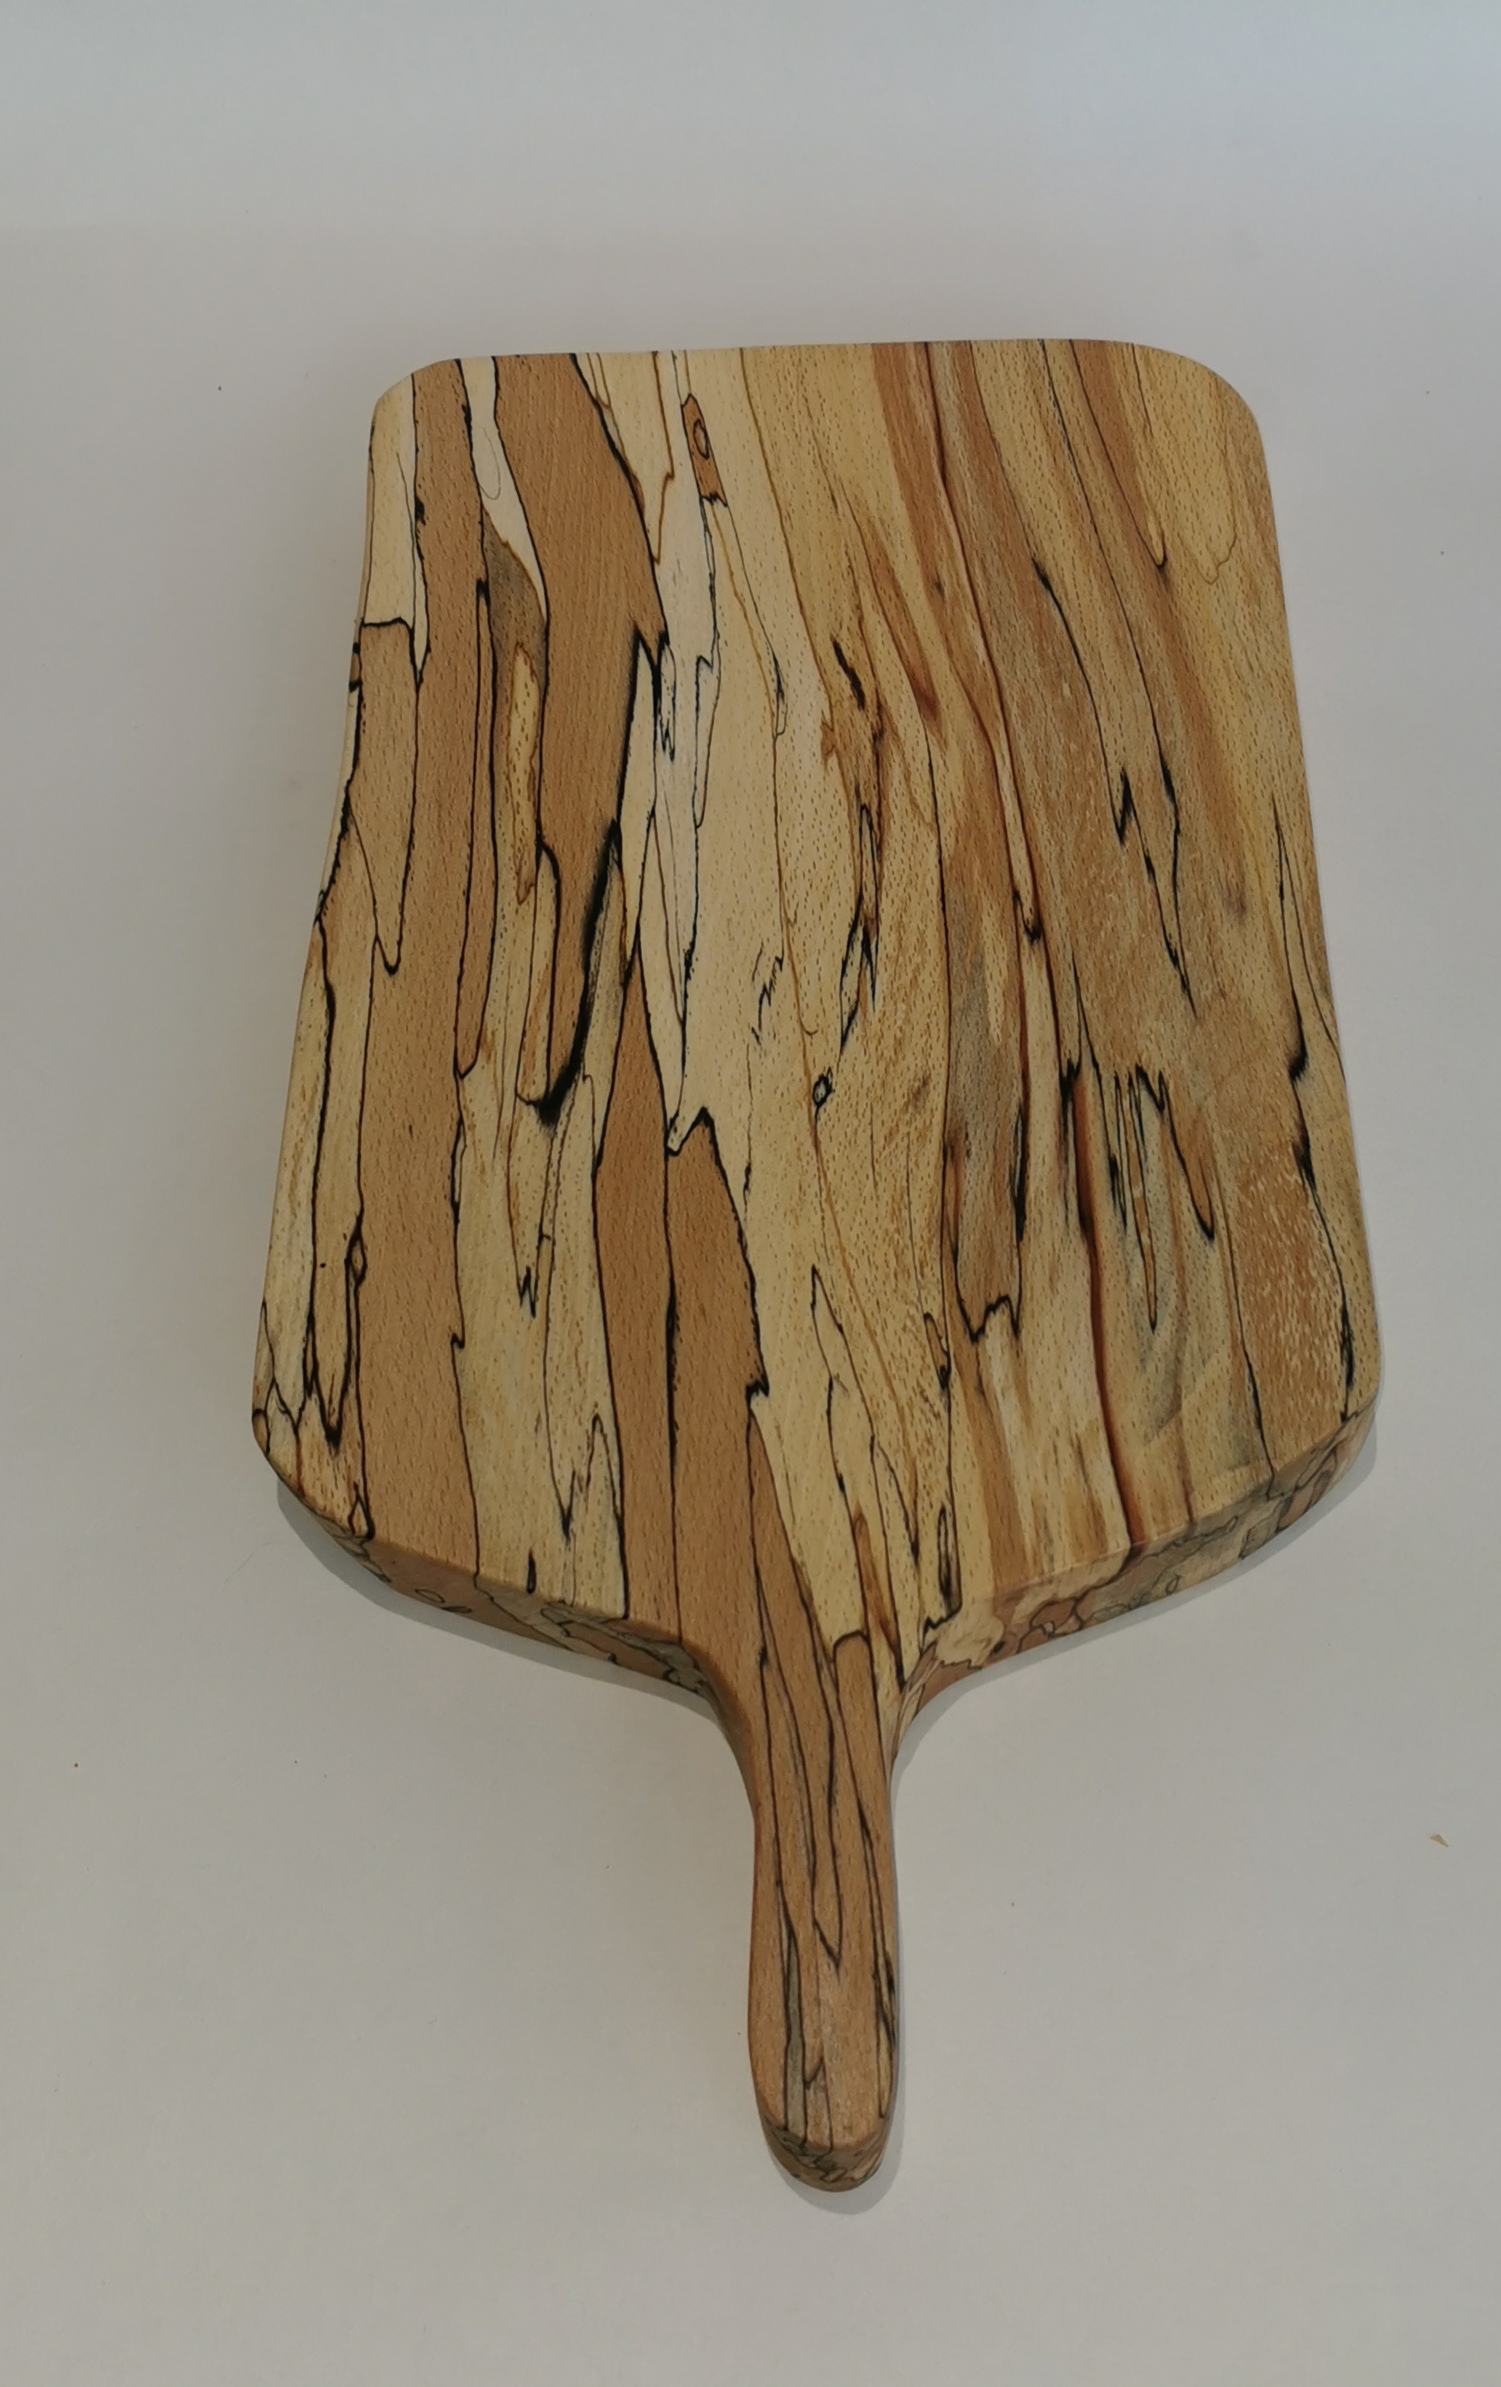 Spalted Beech Paddle Board